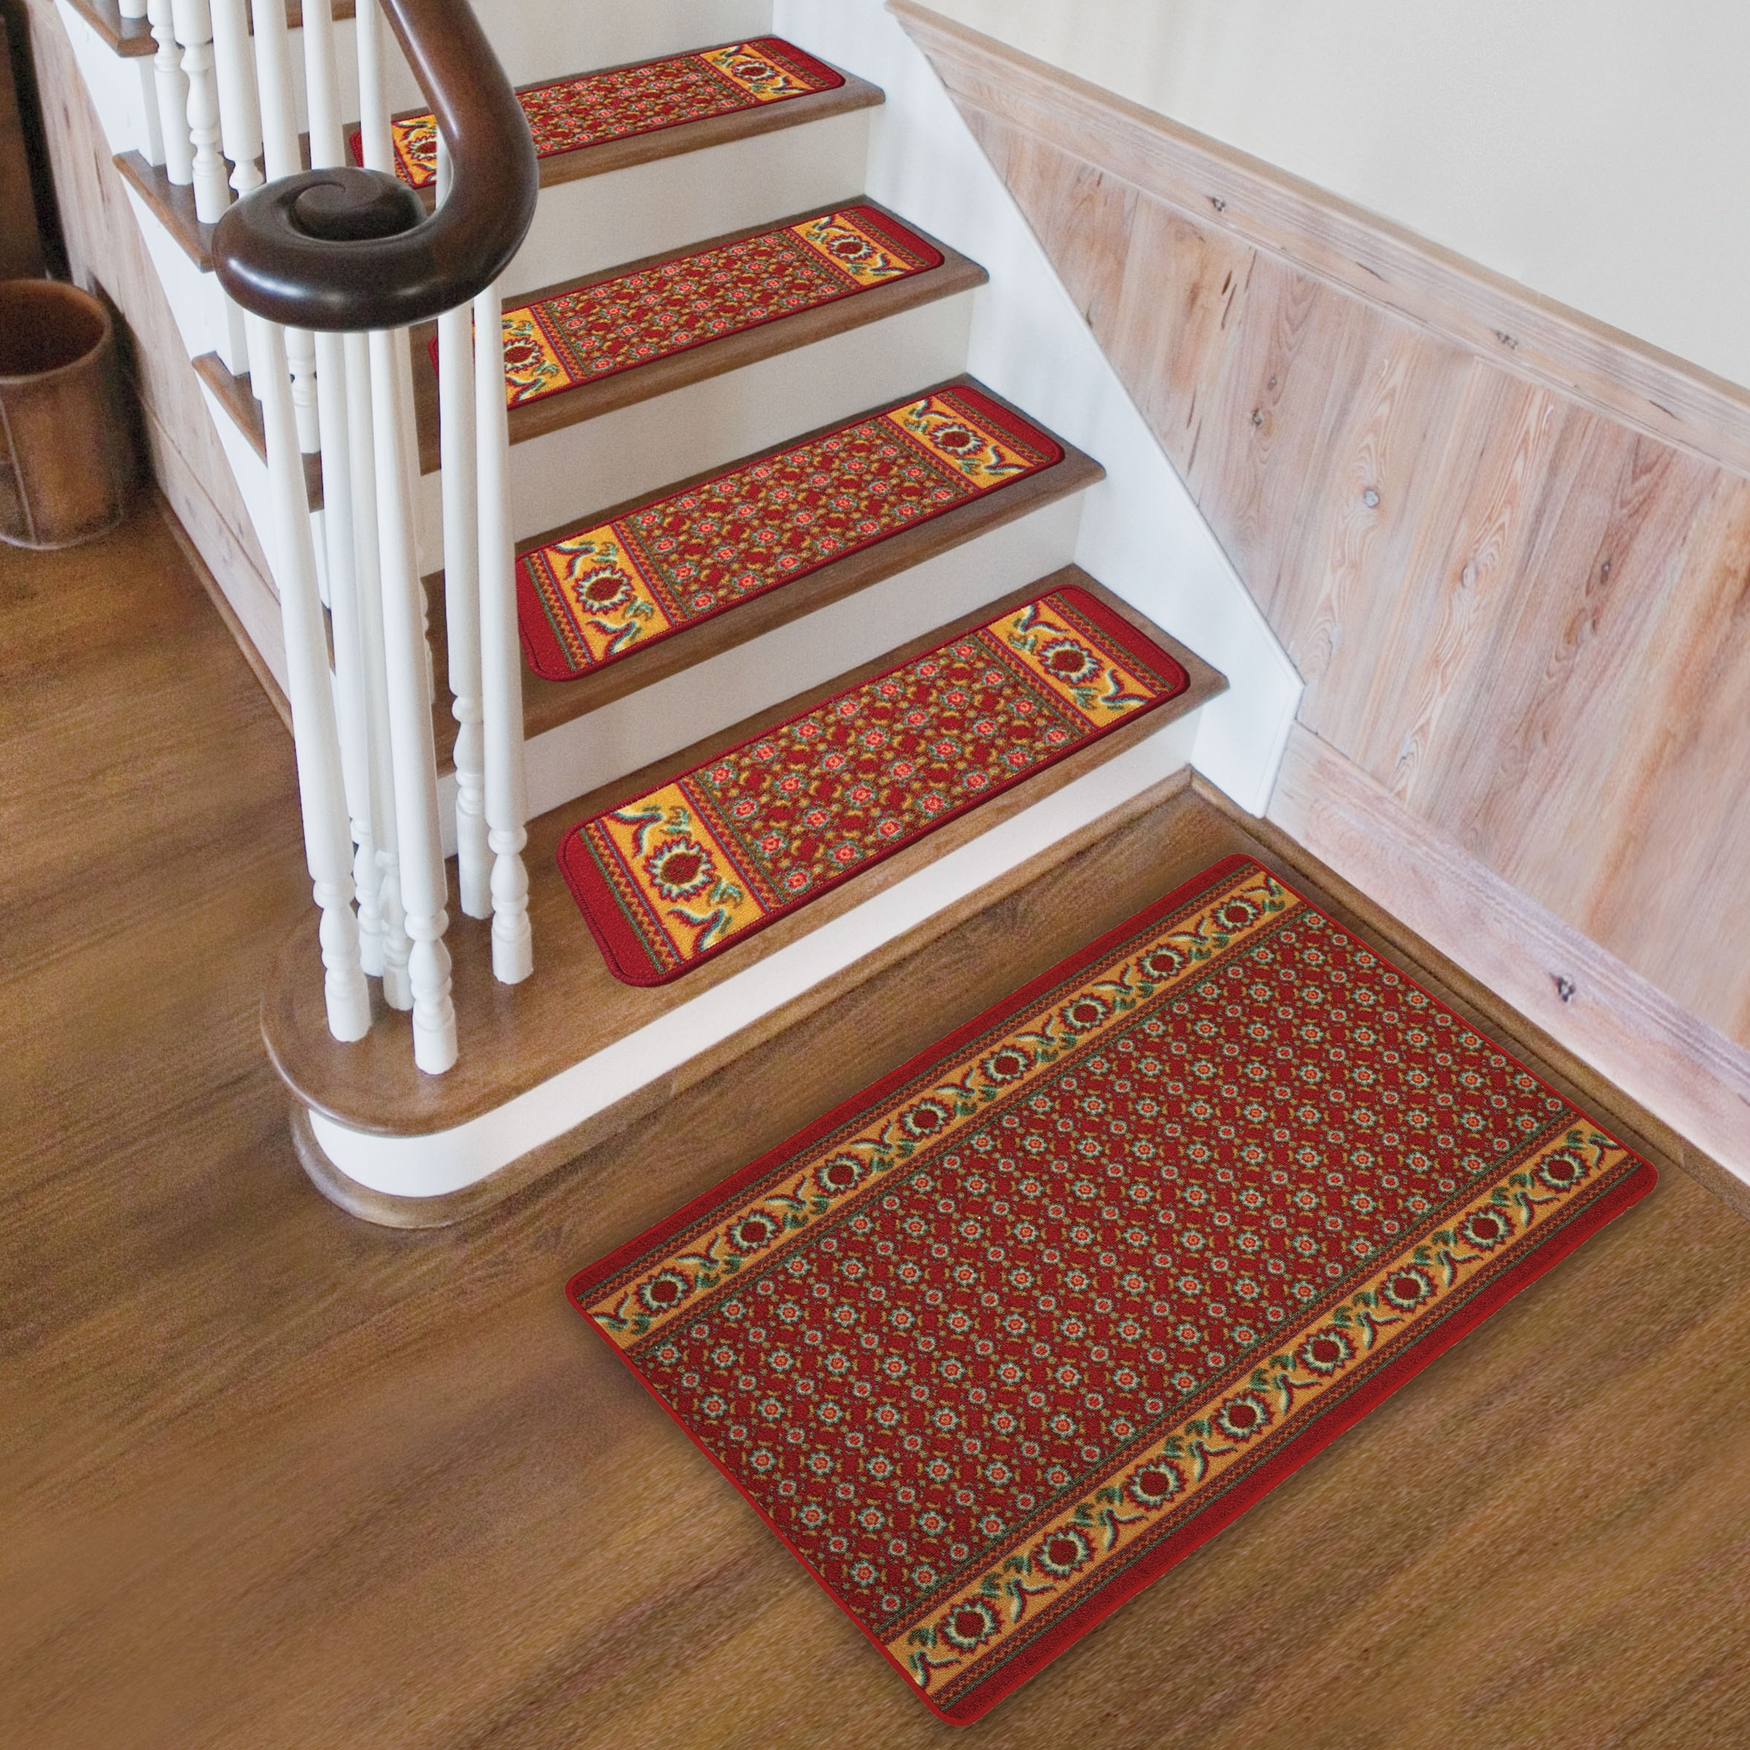 Rugs Carpet Carpet Stair Pads Carpet Stair Treads Pertaining To Stair Tread Rug Pads (Image 14 of 15)